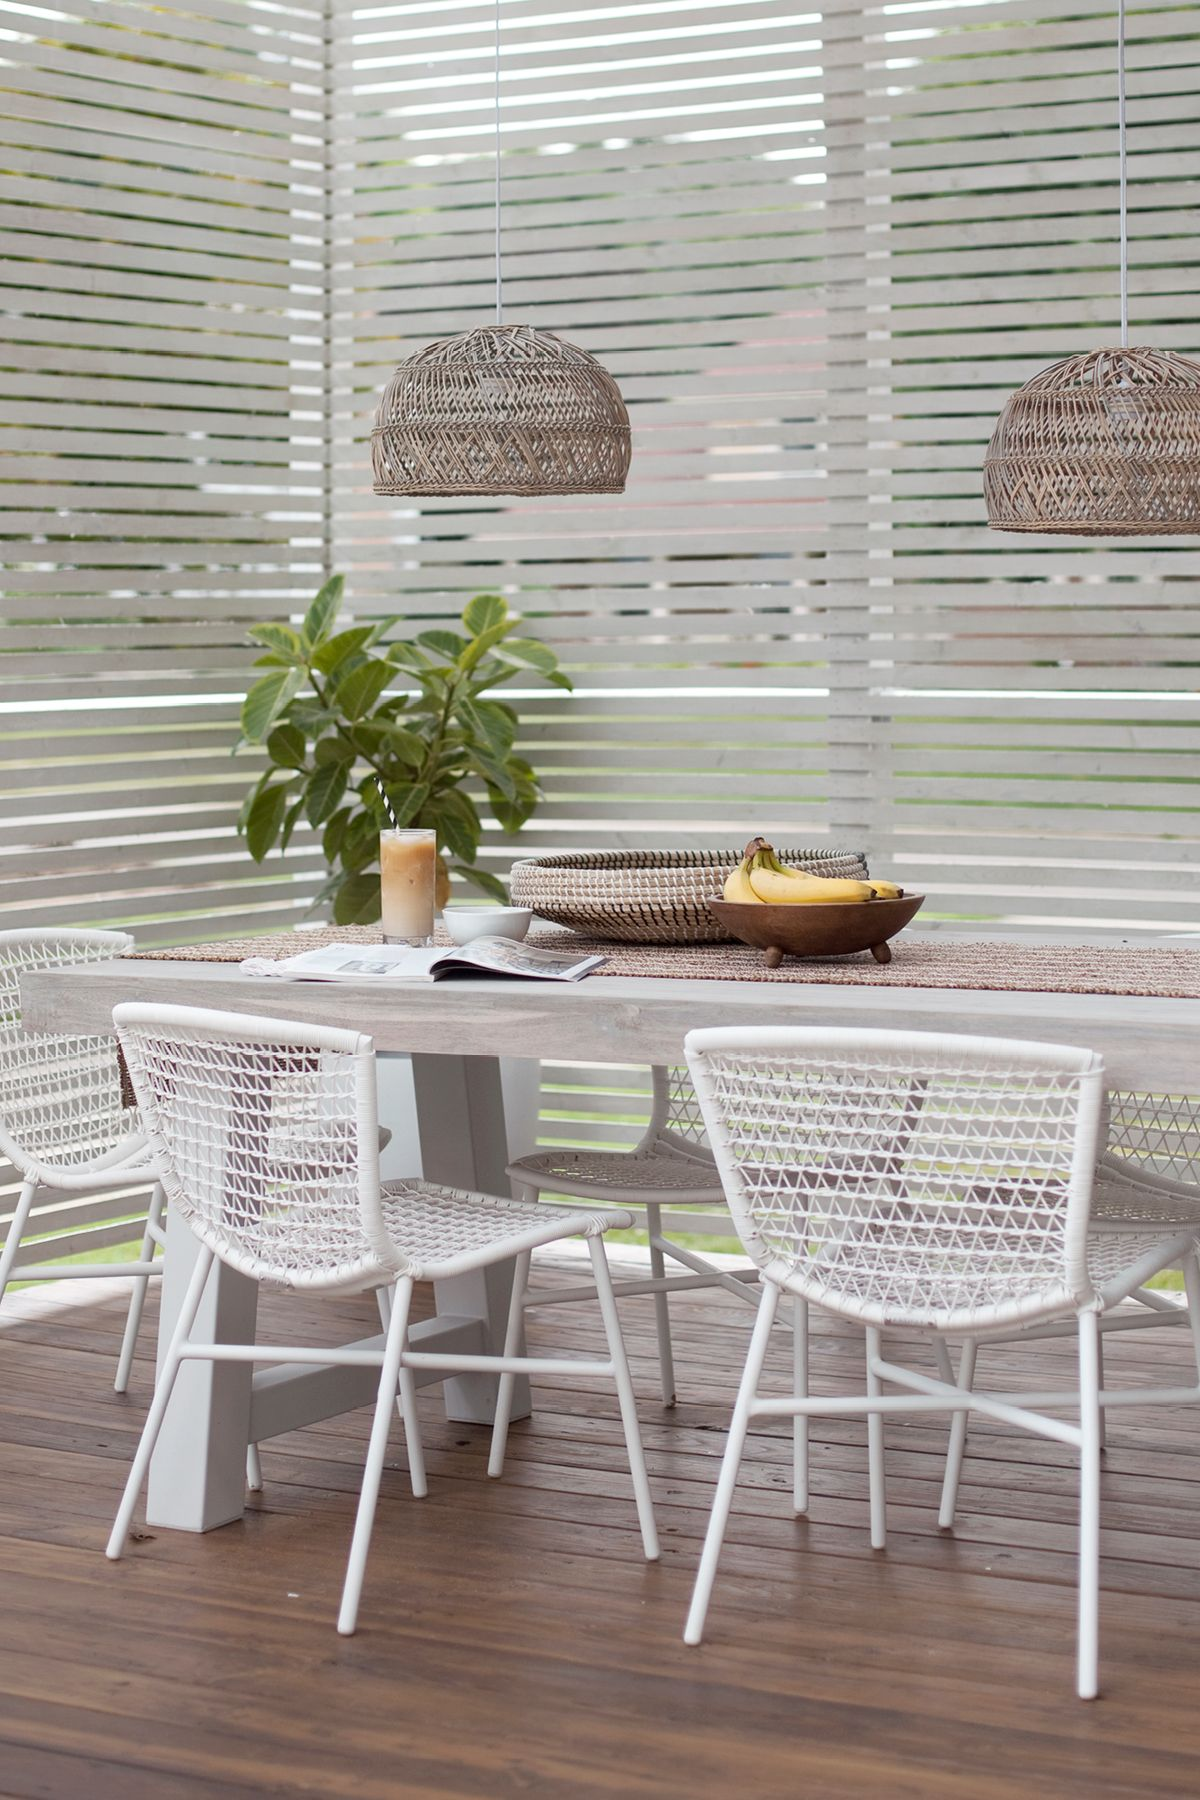 Sala White Outdoor Dining Chair White Dining Chairs Indoor Outdoor Furniture Dining Chairs